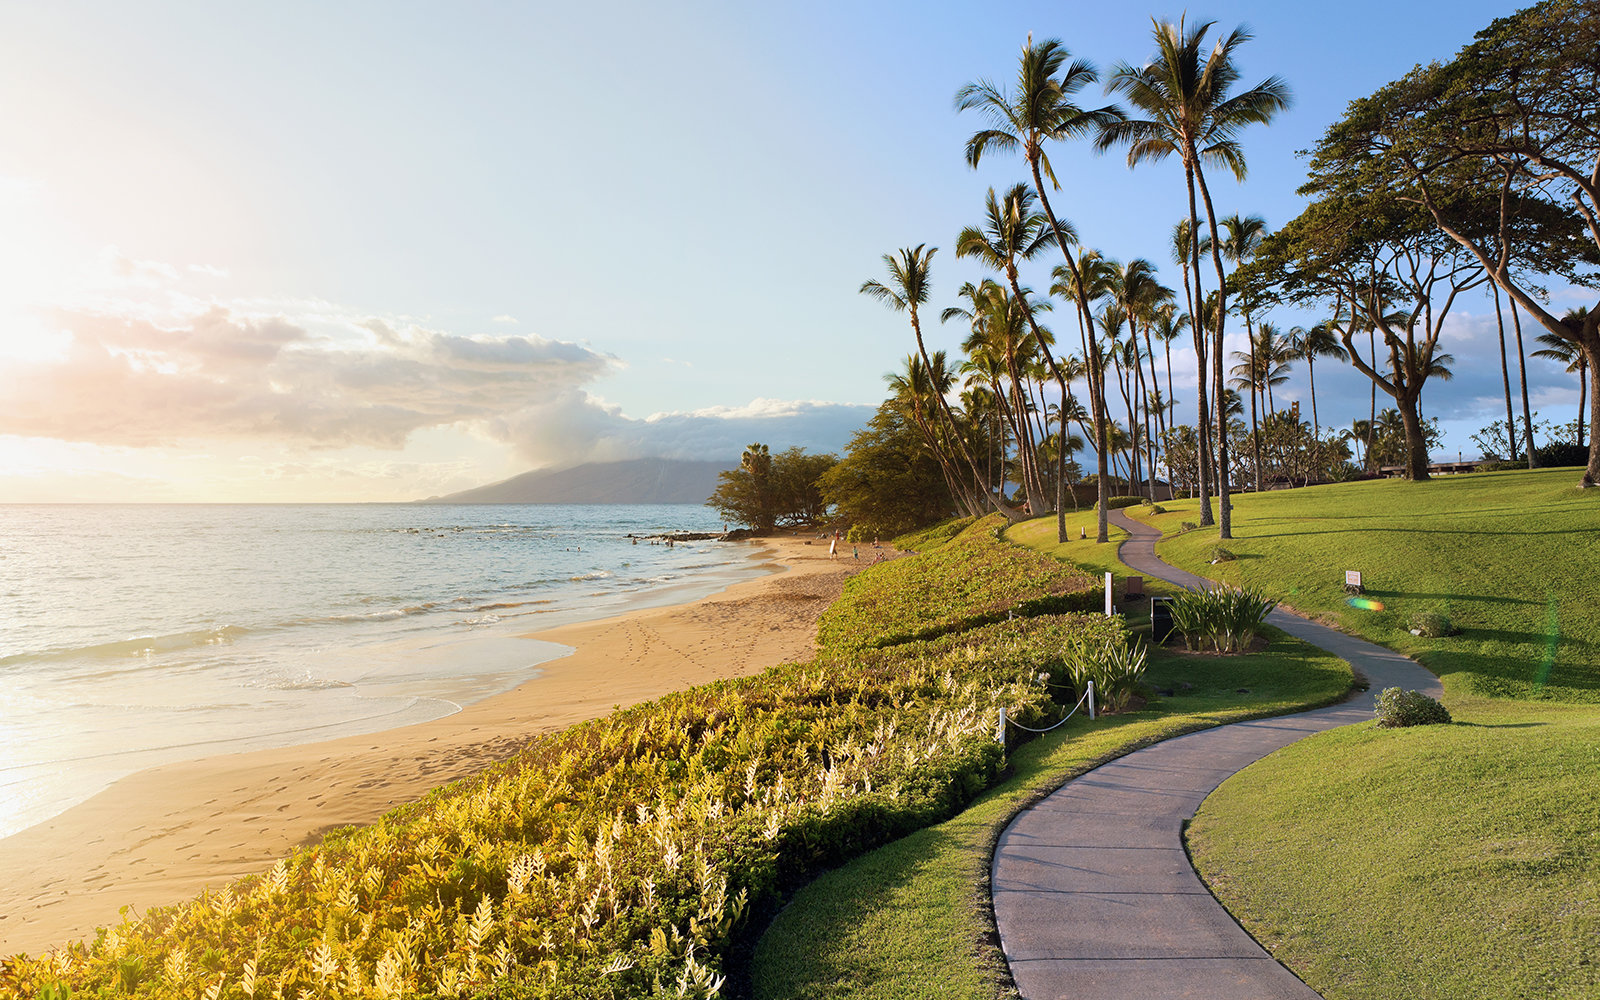 Wailea beach, Hawaii